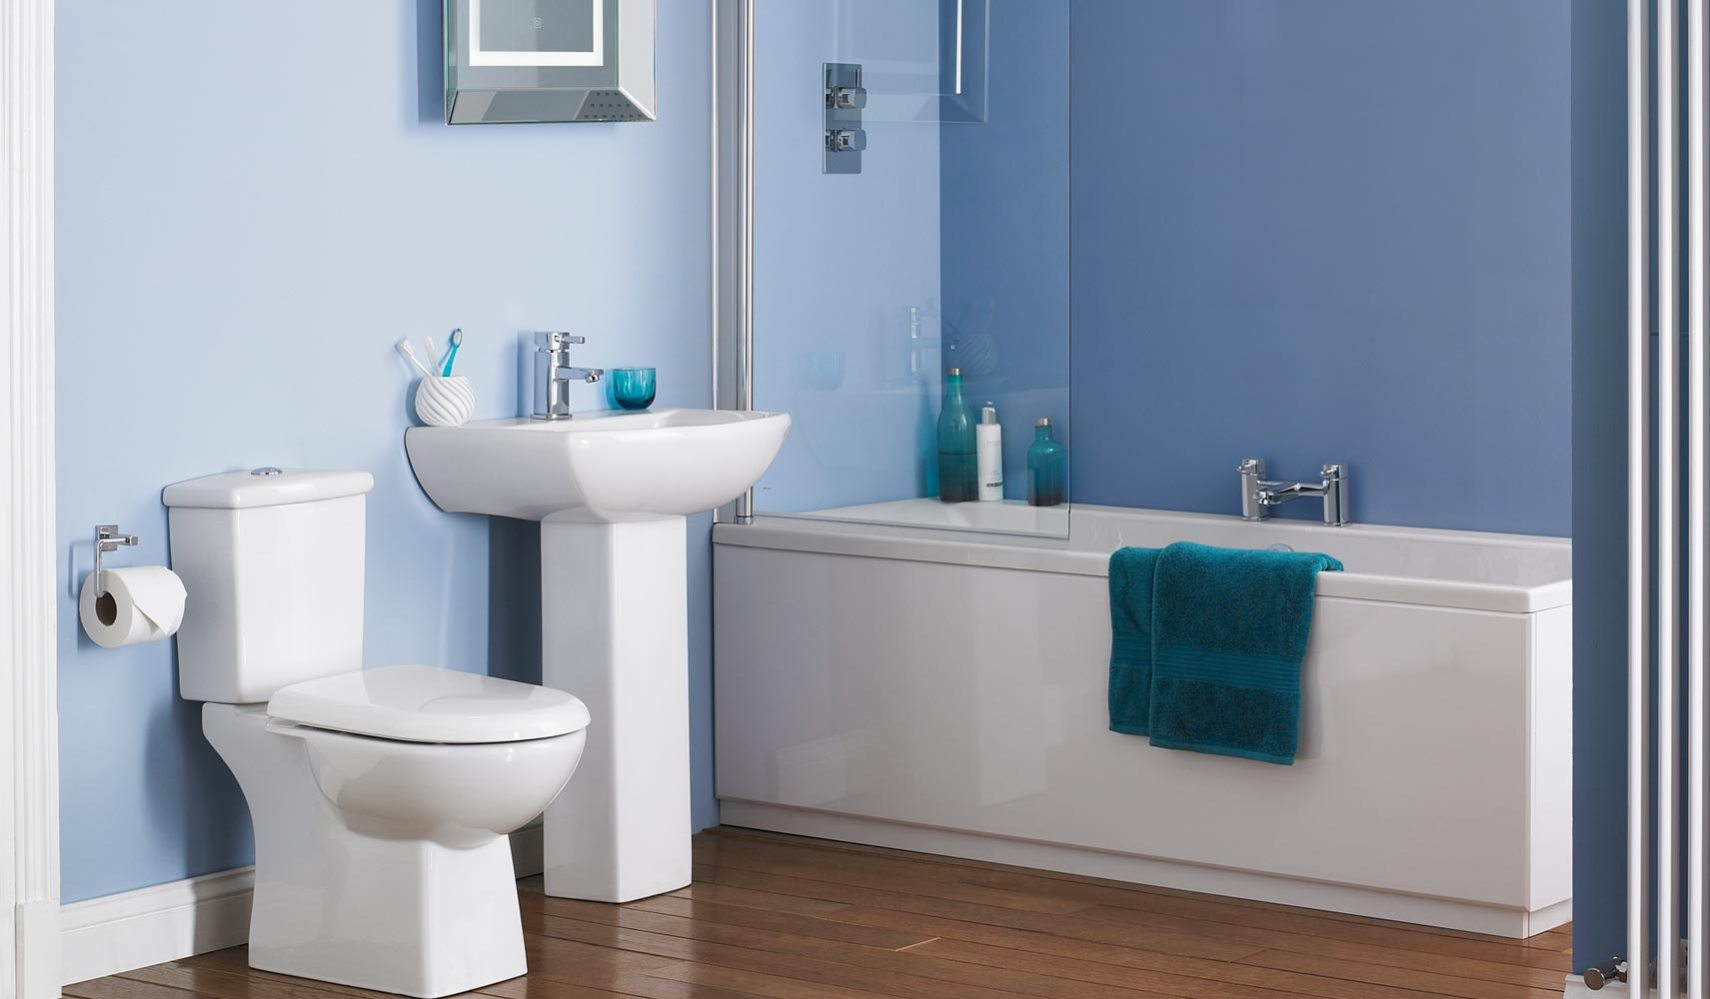 asselby bathroom suite - Bathroom Designs Uk